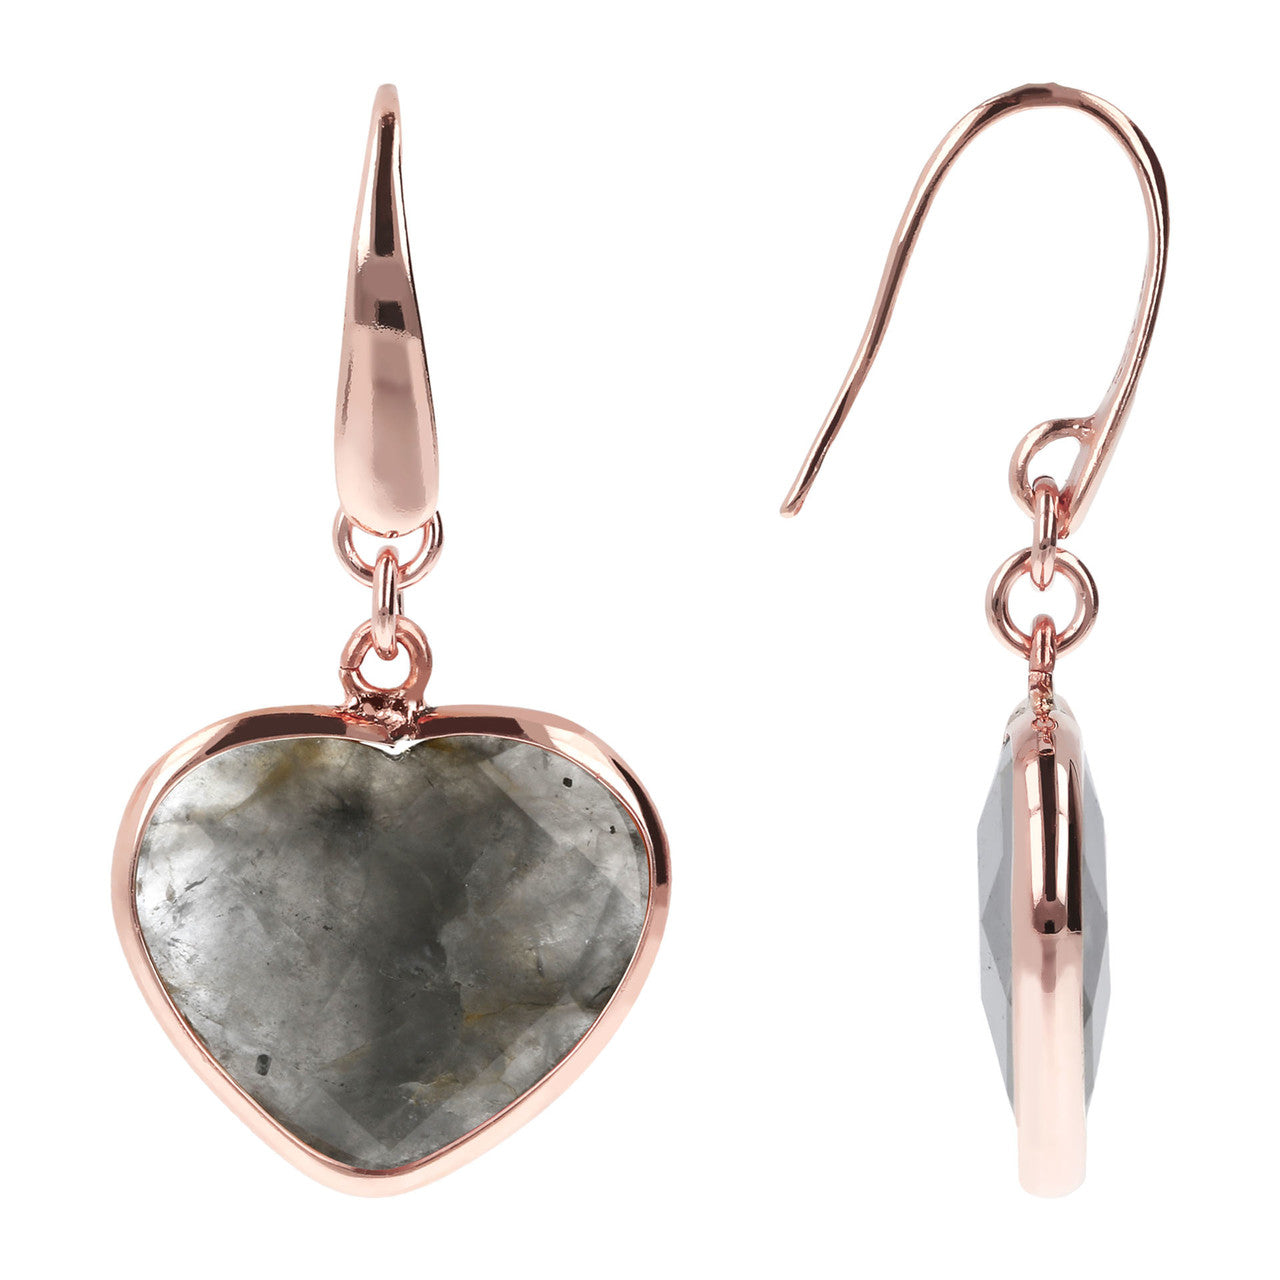 Mother of Pearl Heart Earrings front and side